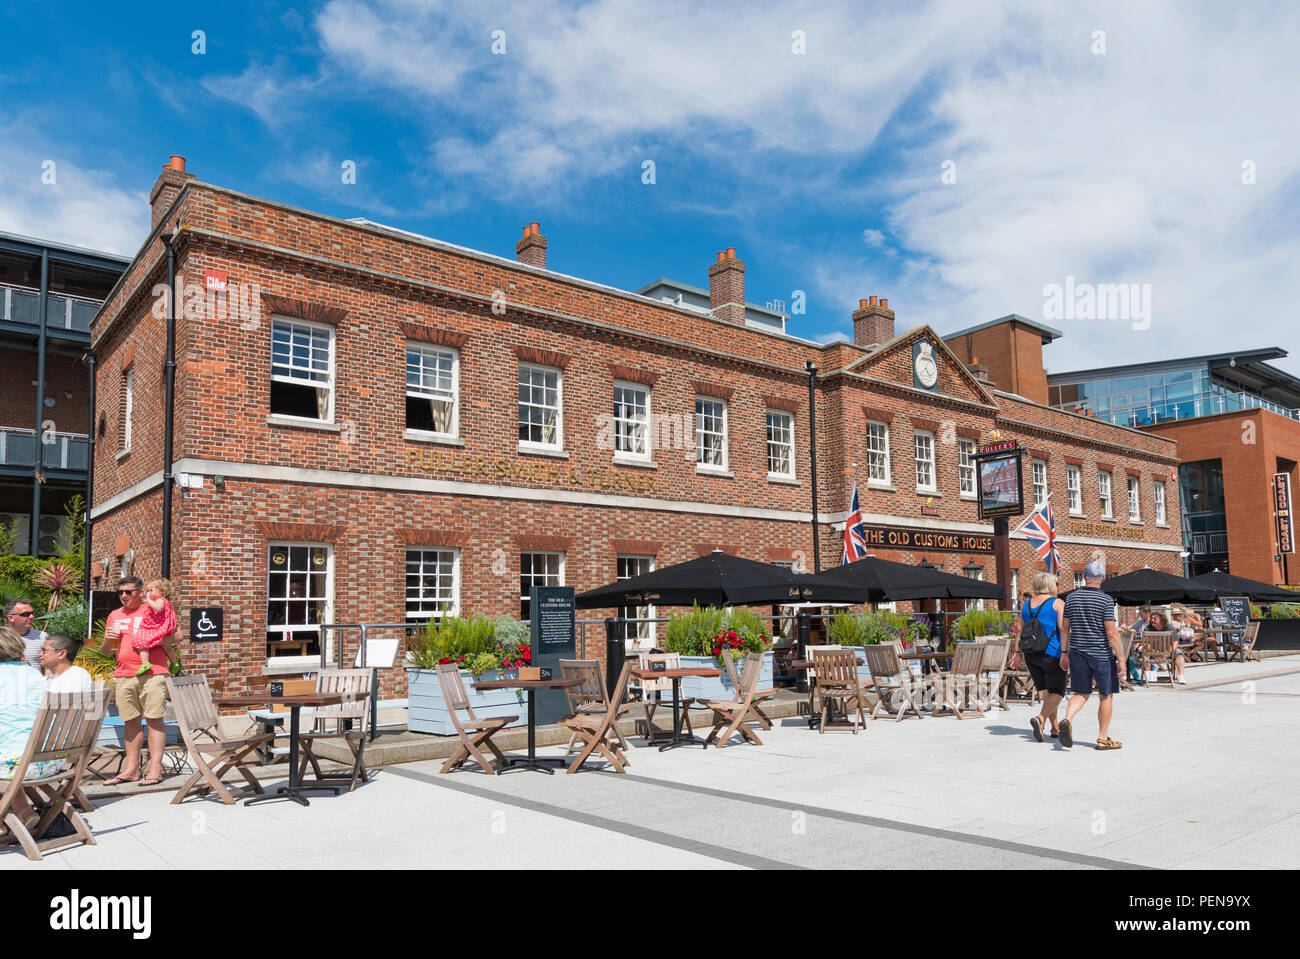 The Old Customs House pub in Gunwharf Guays, Portsmouth, Hampshire, England, UK. Fullers Smith and Turner public house. - Stock Image